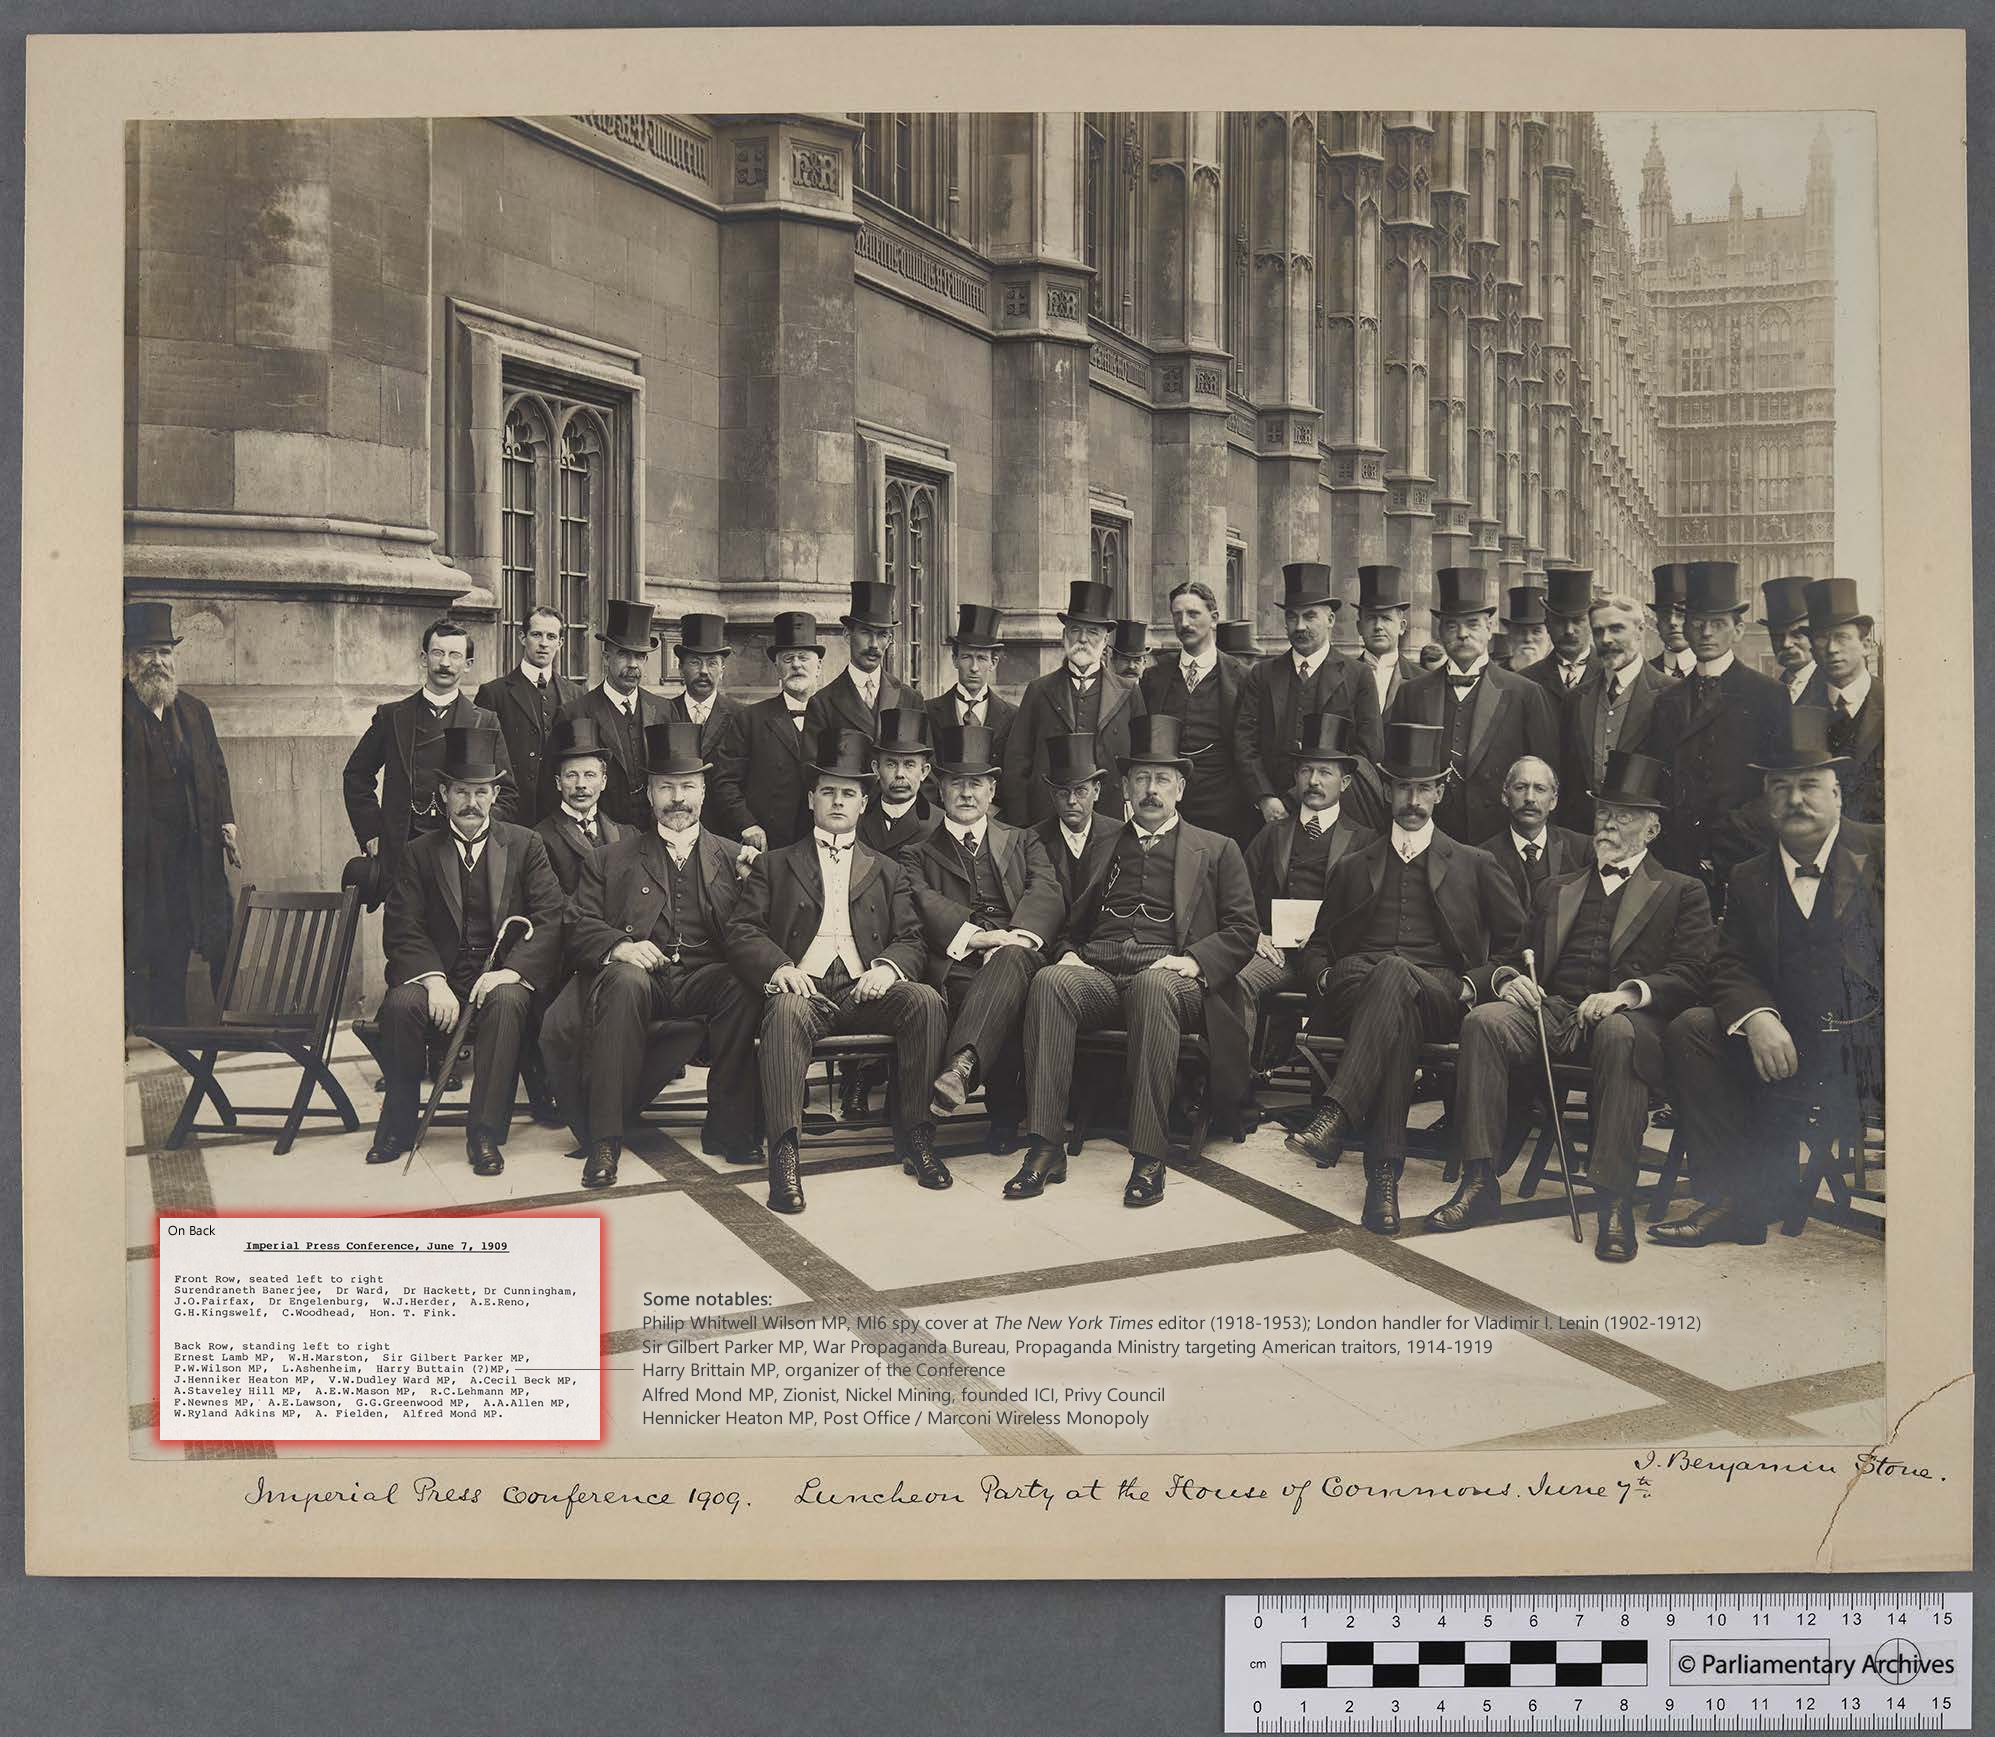 Sir Benjamin Stone, photog. (Jun. 07, 1909). Luncheon Party at the House of Commons. Imperial Press Conference 1909, HC/LB/1/111/20/69. UK Parliamentary Archives